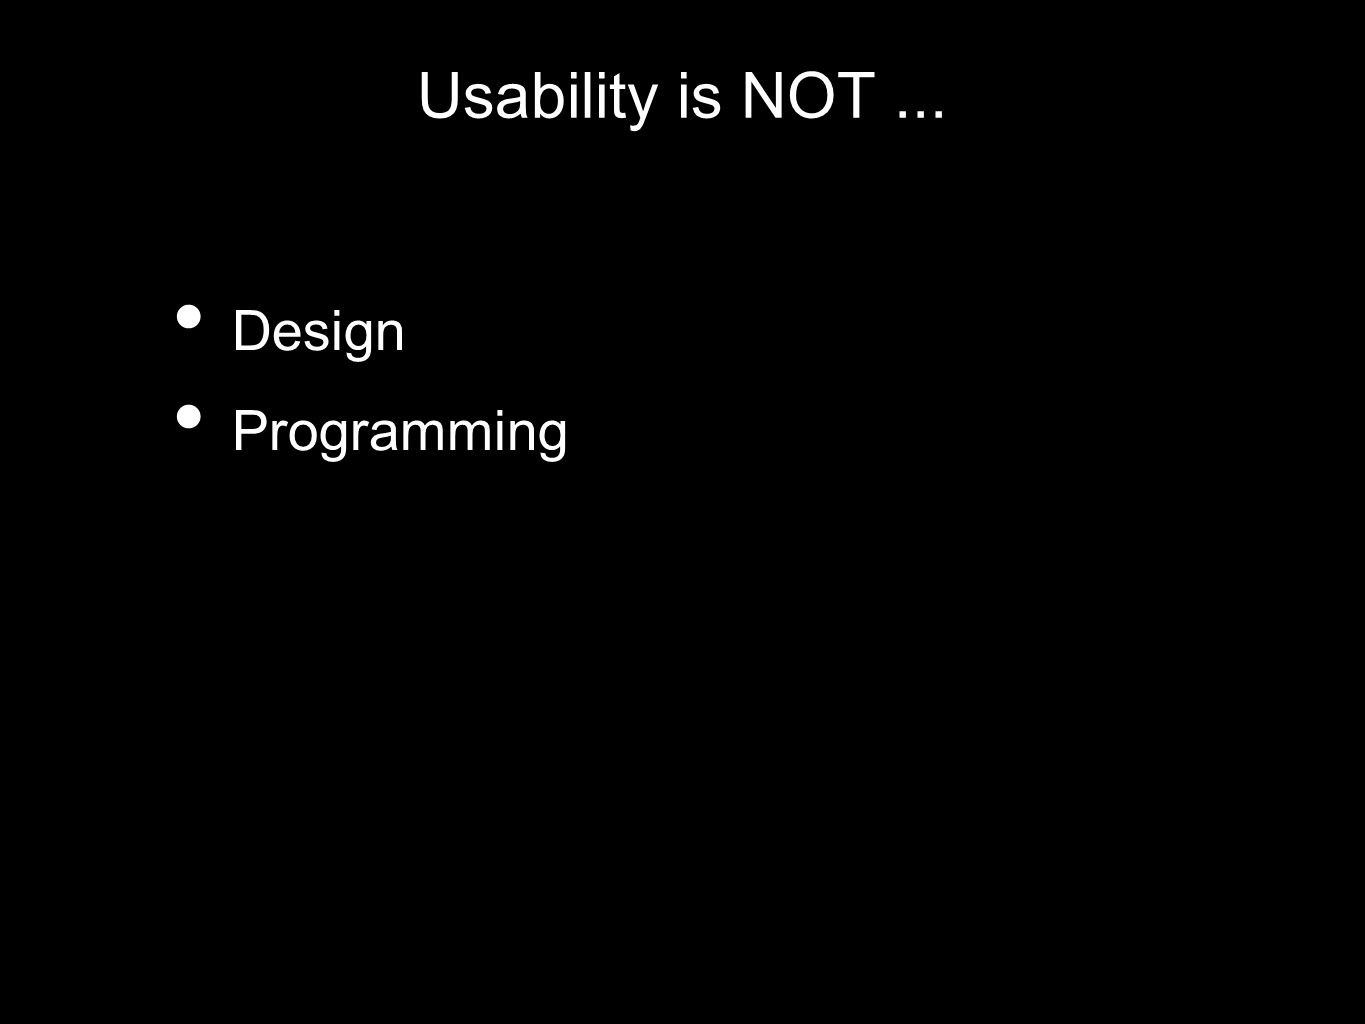 Usability is NOT... Design Programming